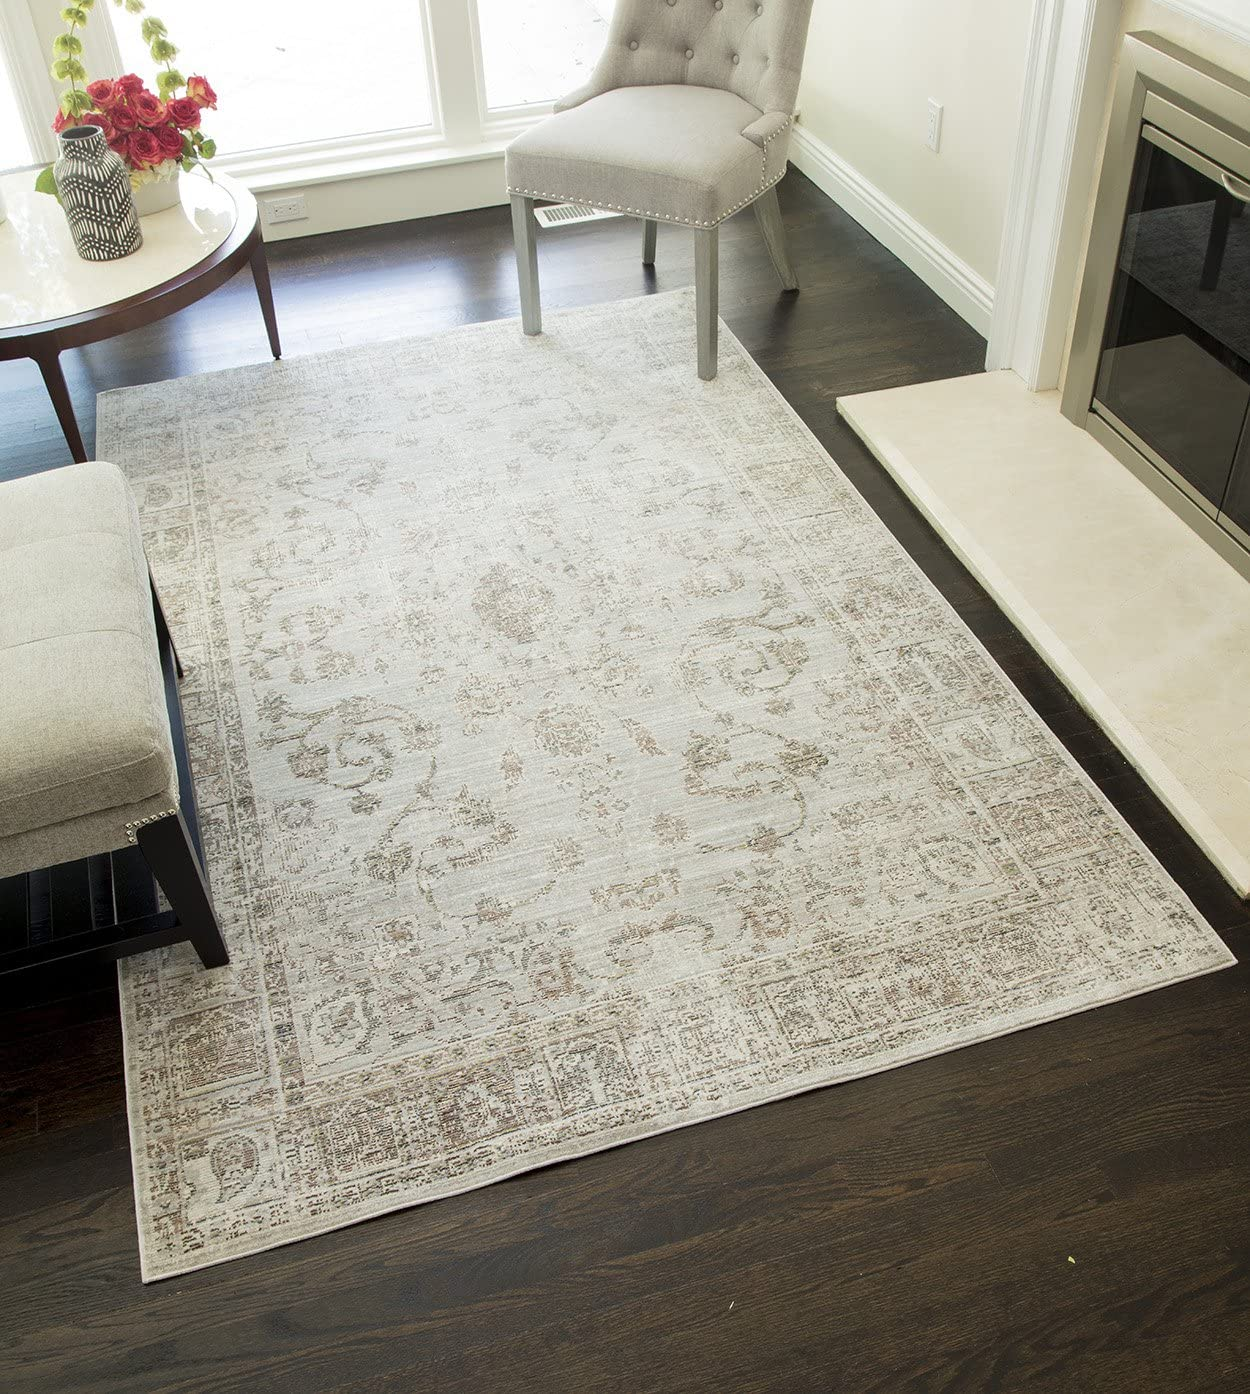 Home Garden Rugs Area Rugs Carpet 5x7 Area Rug Floor Modern Gray Checkered Cool Blue Rugs Sisal Seagrass Area Rugs